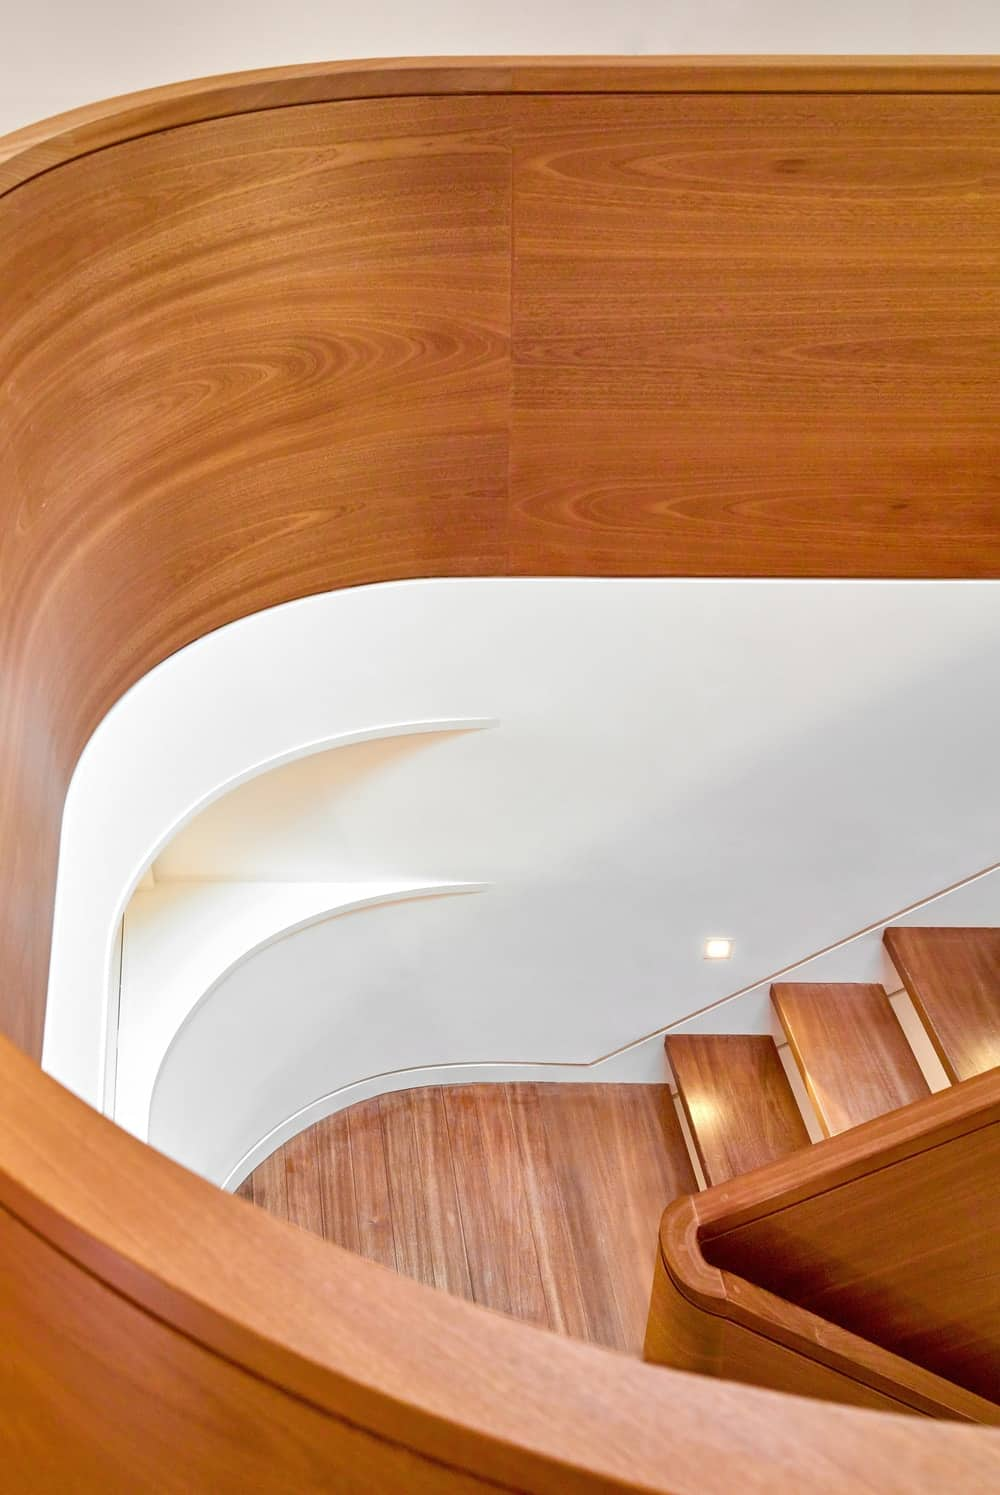 This is a look down the wooden stairs from the second level. You can see here the wooden steps complemented by the white walls.